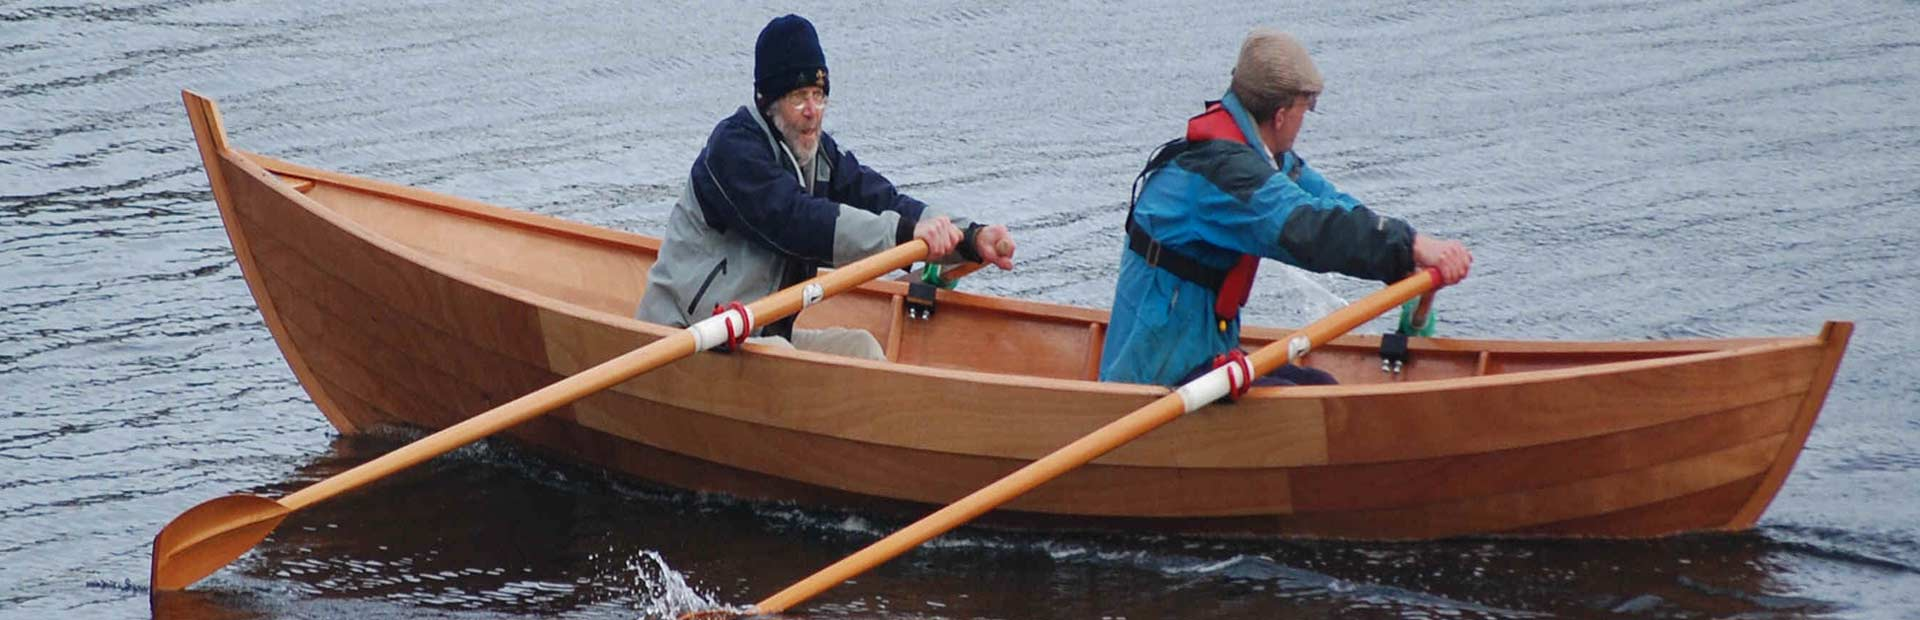 Two men in wooden rowboat on a lake, rowing.